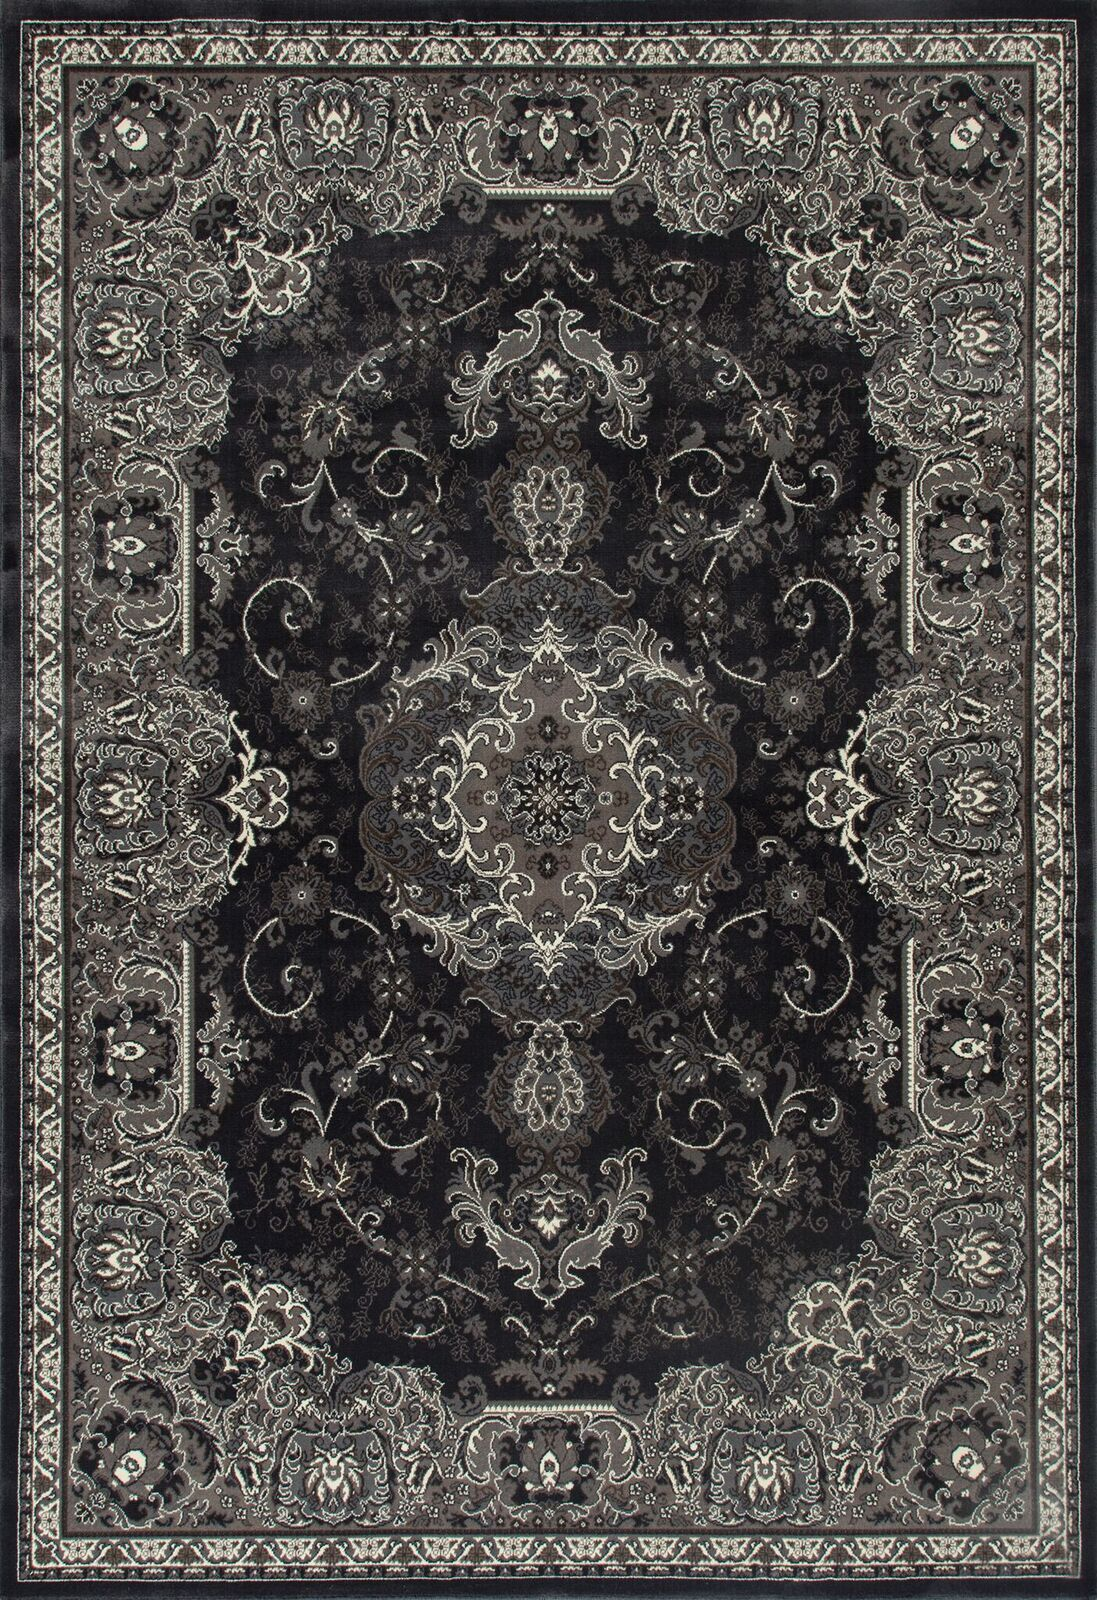 Channel Gray Area Rug Rug Size: 5'3 x 7'7